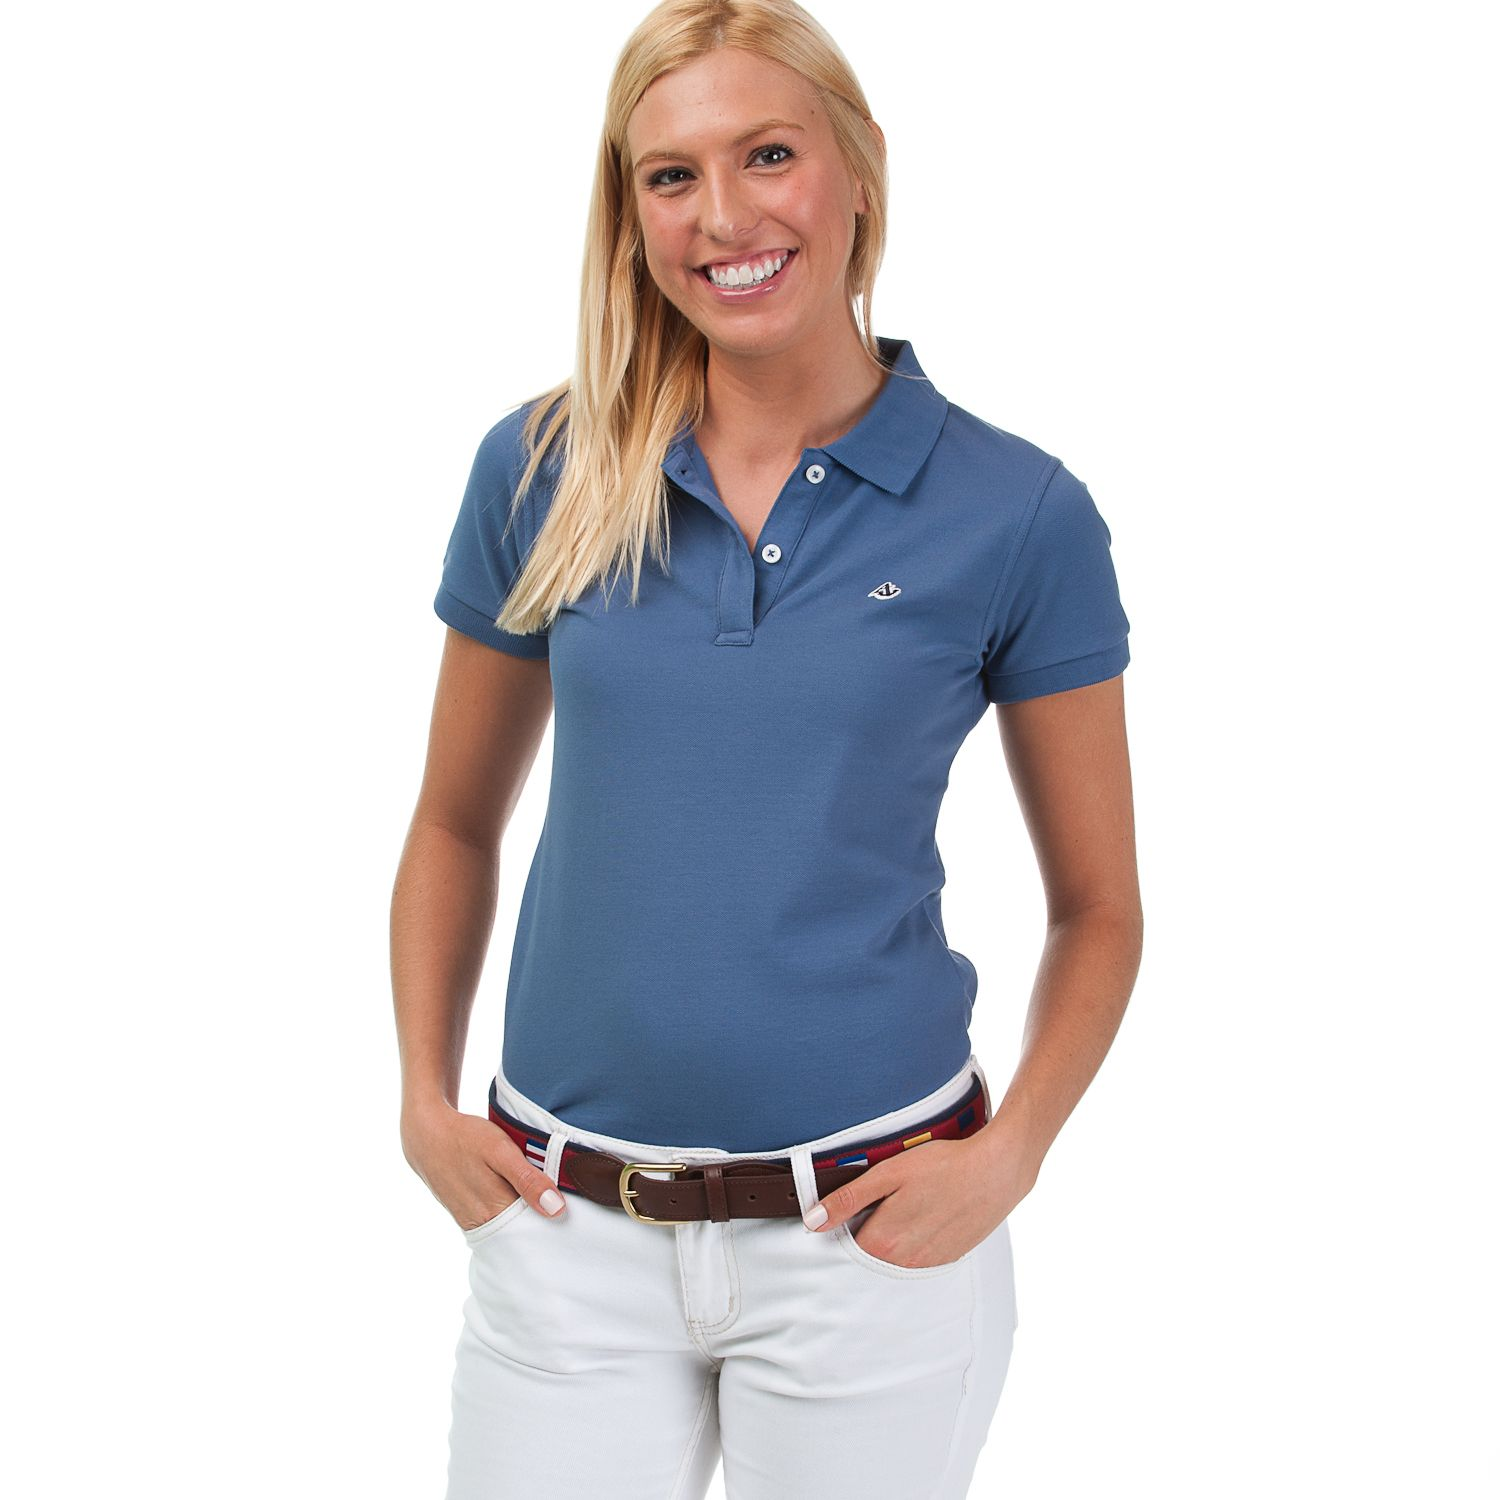 c5d34fc4 Sailors Navy Ladies Polo by Anchored Style | Everyday outfit | Polo ...